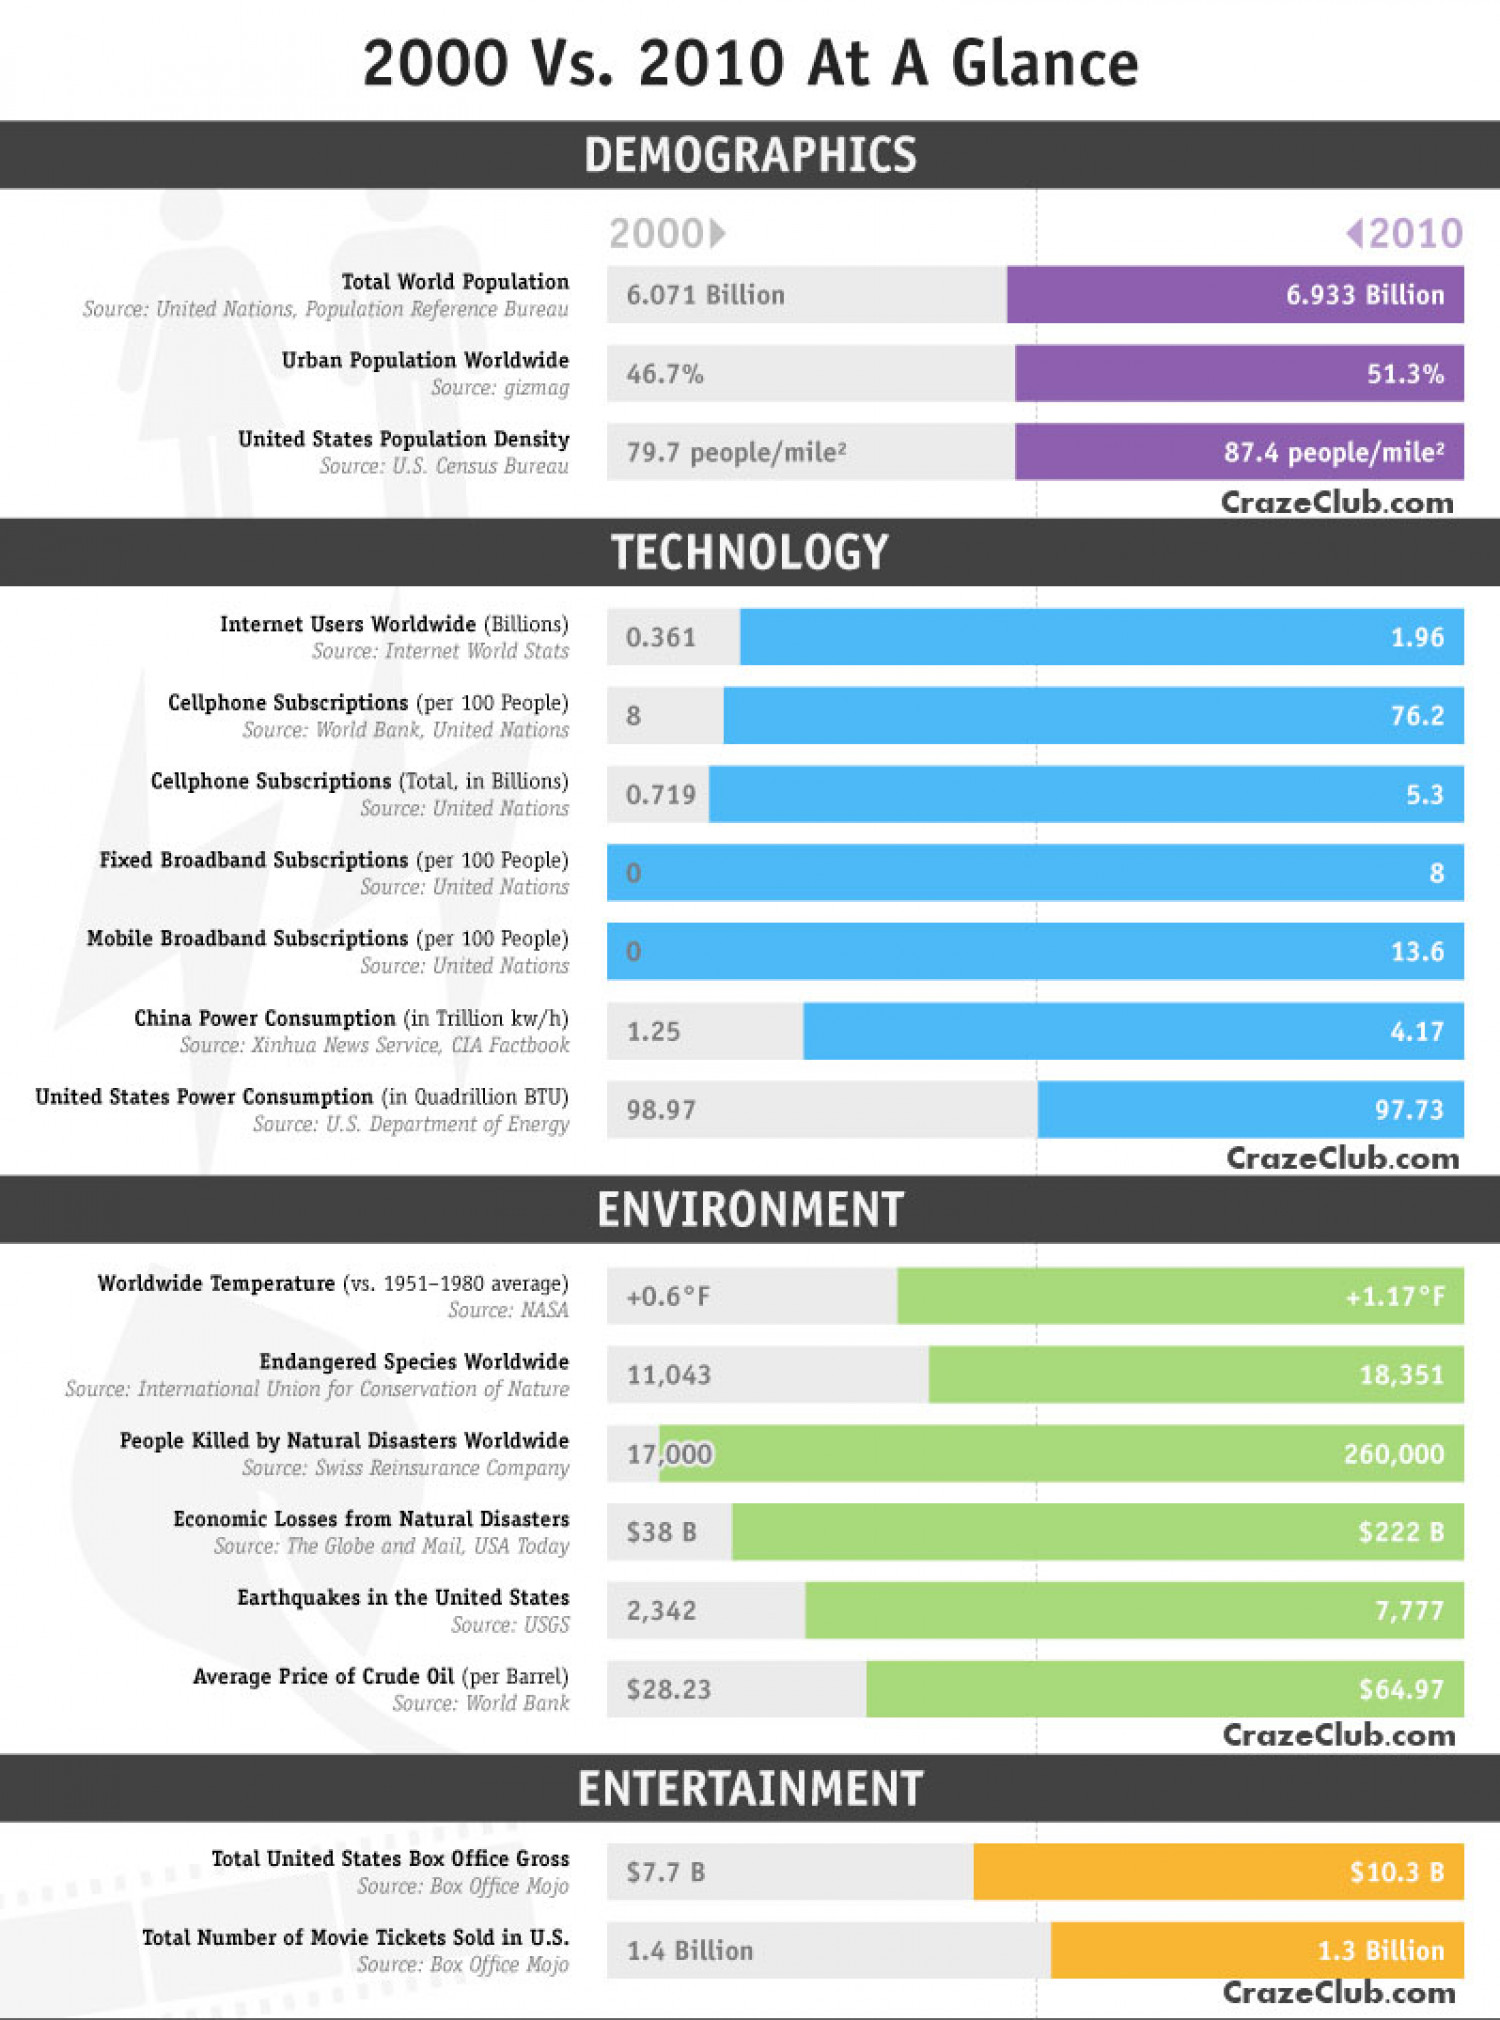 2000 vs2010 at a Glance Infographic